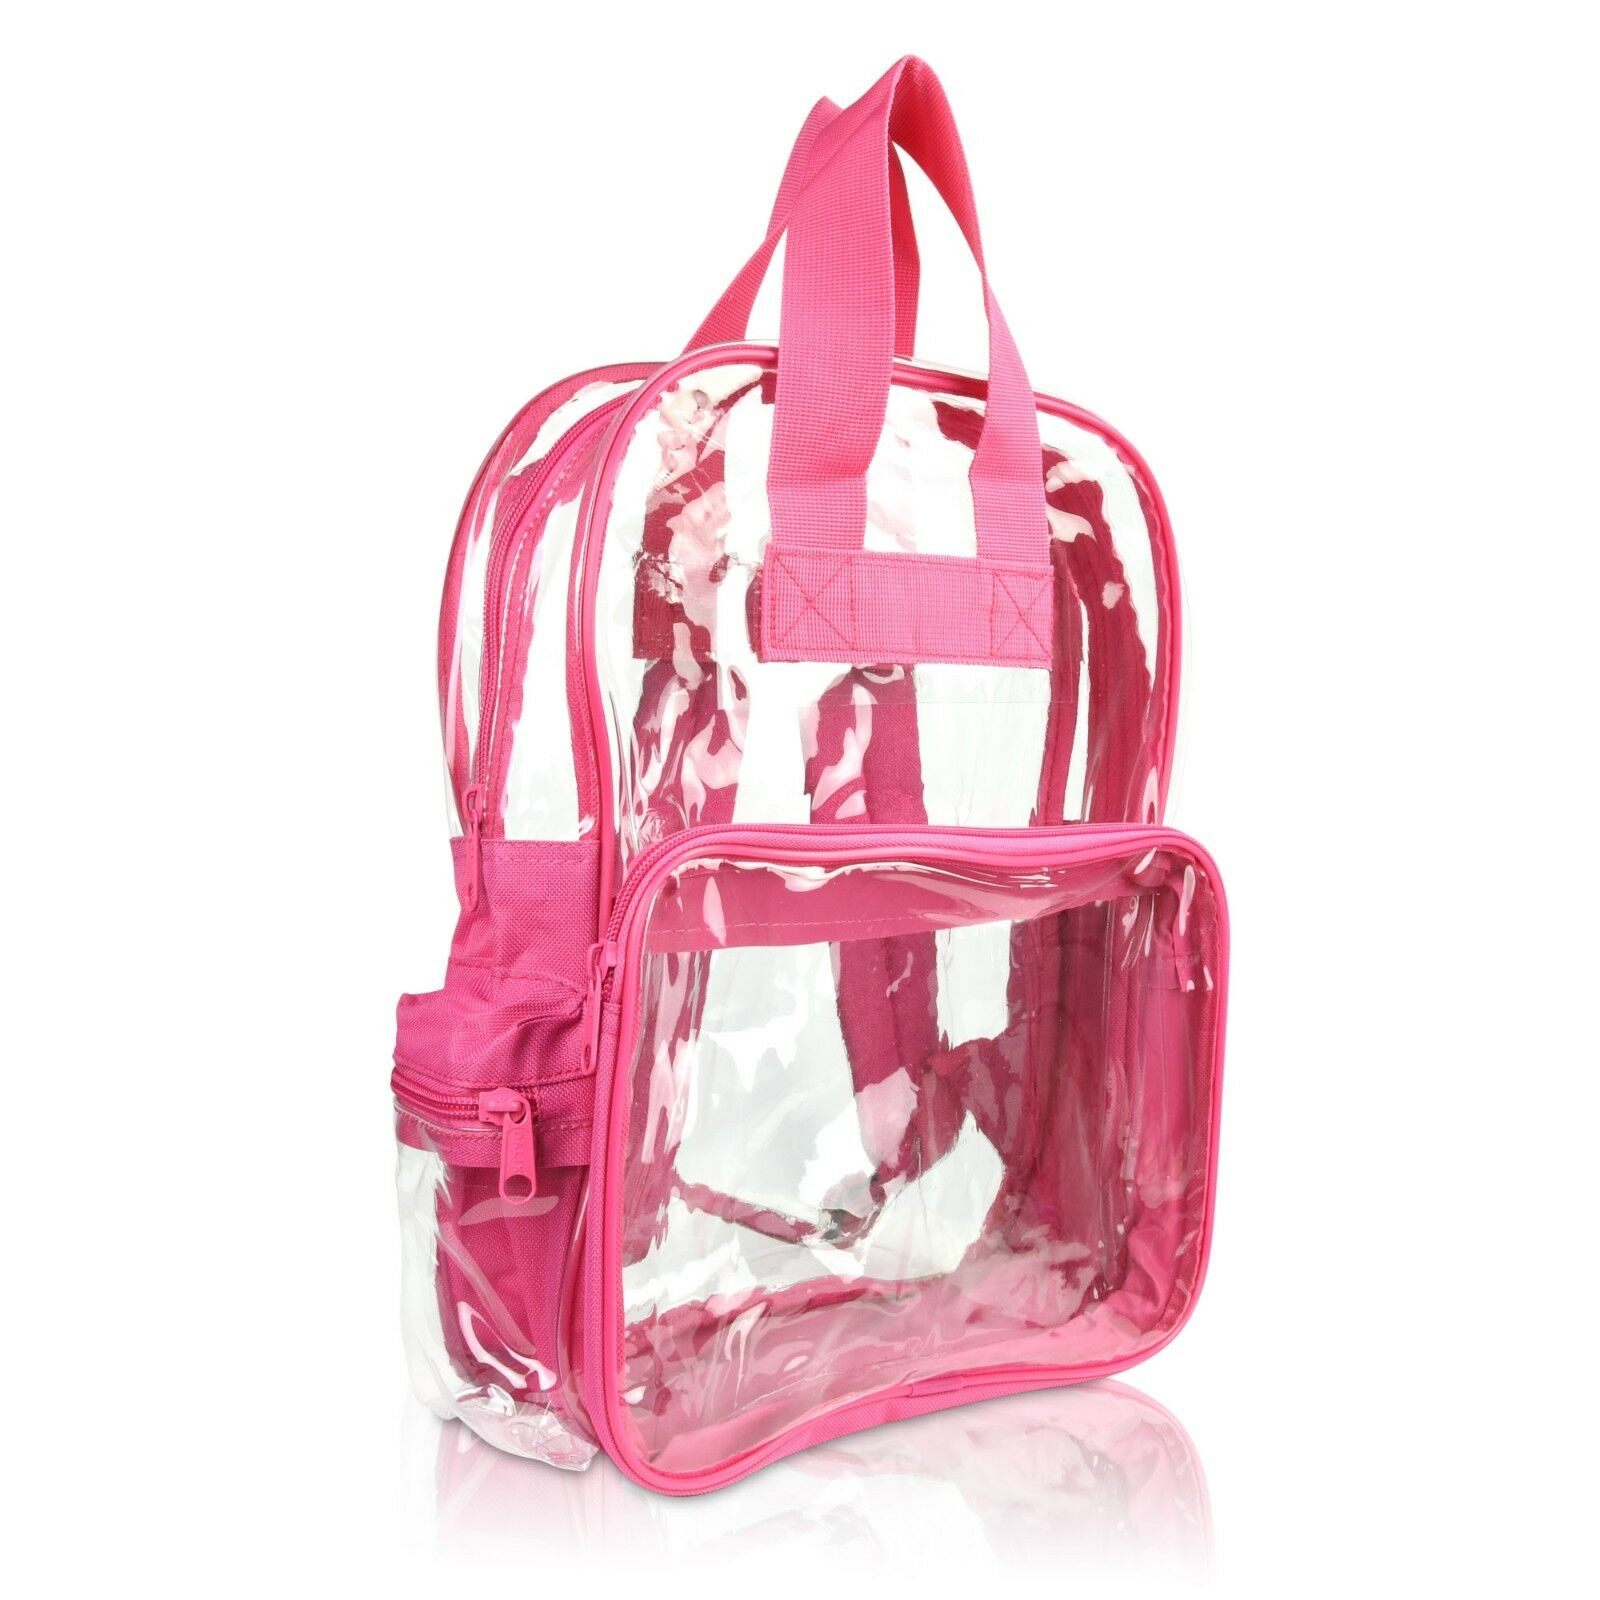 DALIX Clear Backpack School Pack See Through Bag in Hot Pink